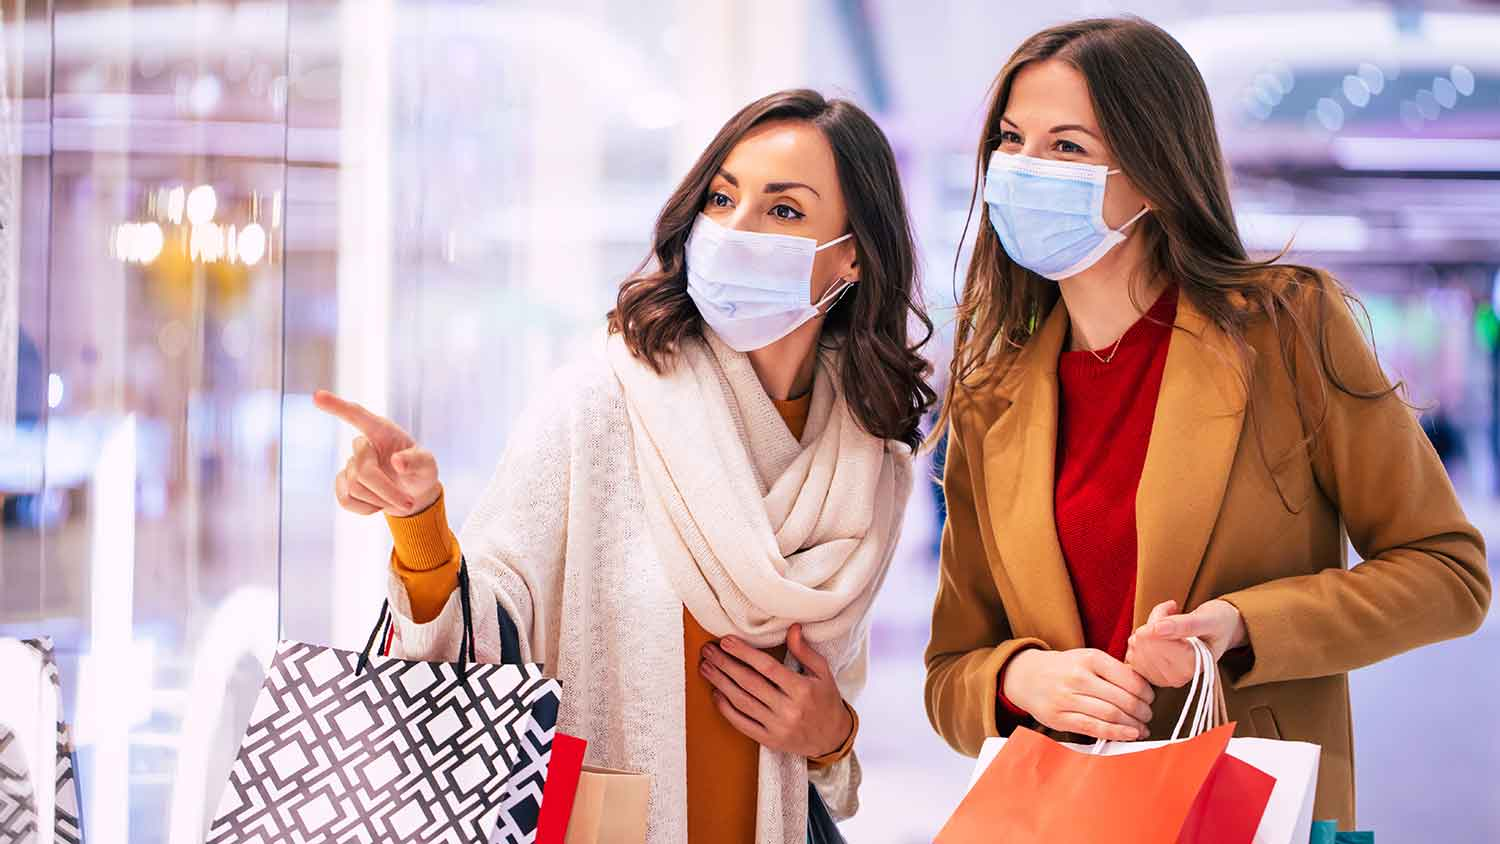 Two women out shopping both wearing PPE masks